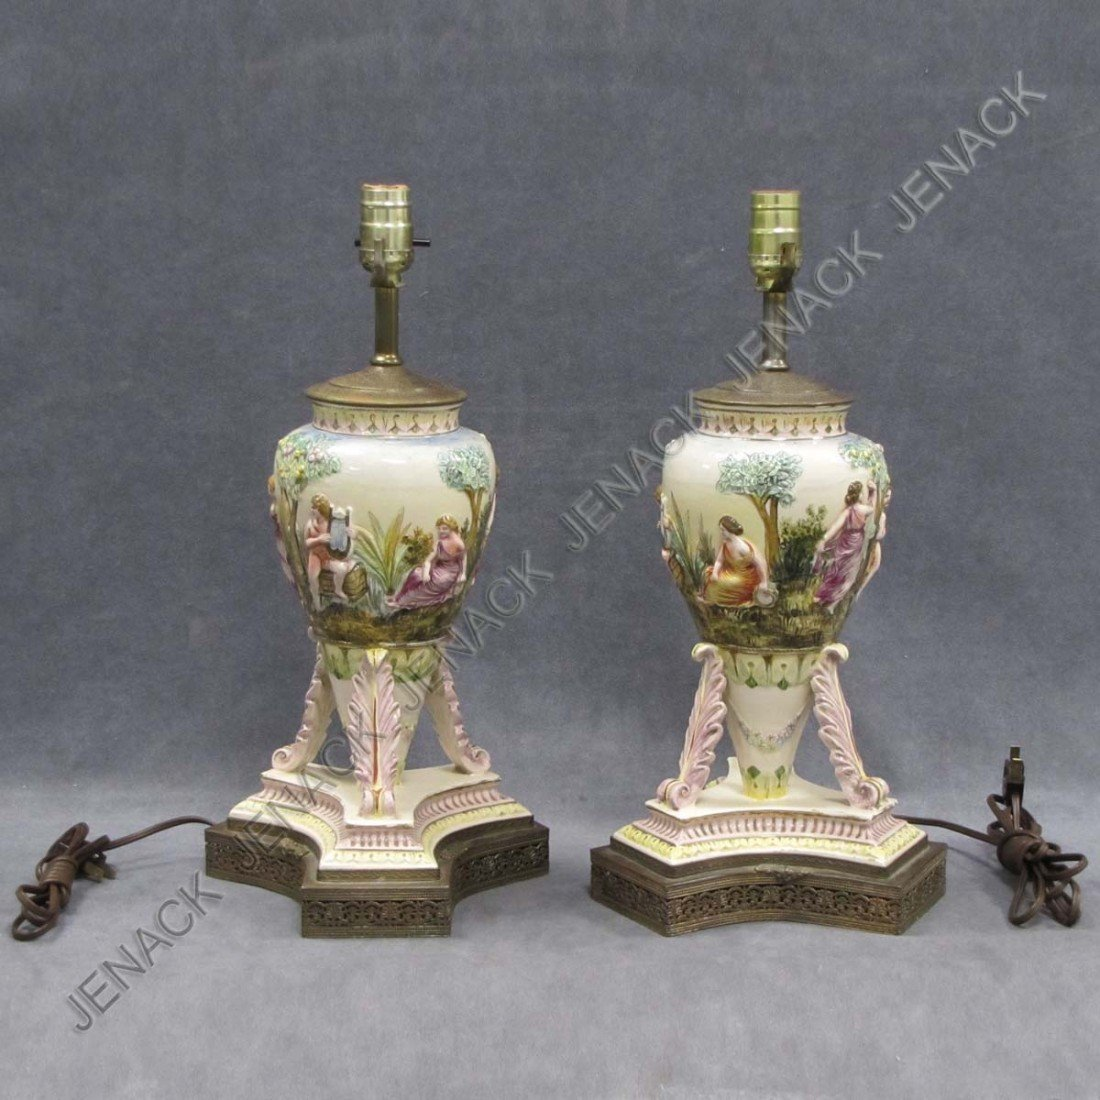 16: PAIR CAPO DI MONTE FAIENCE POTTERY LAMPS